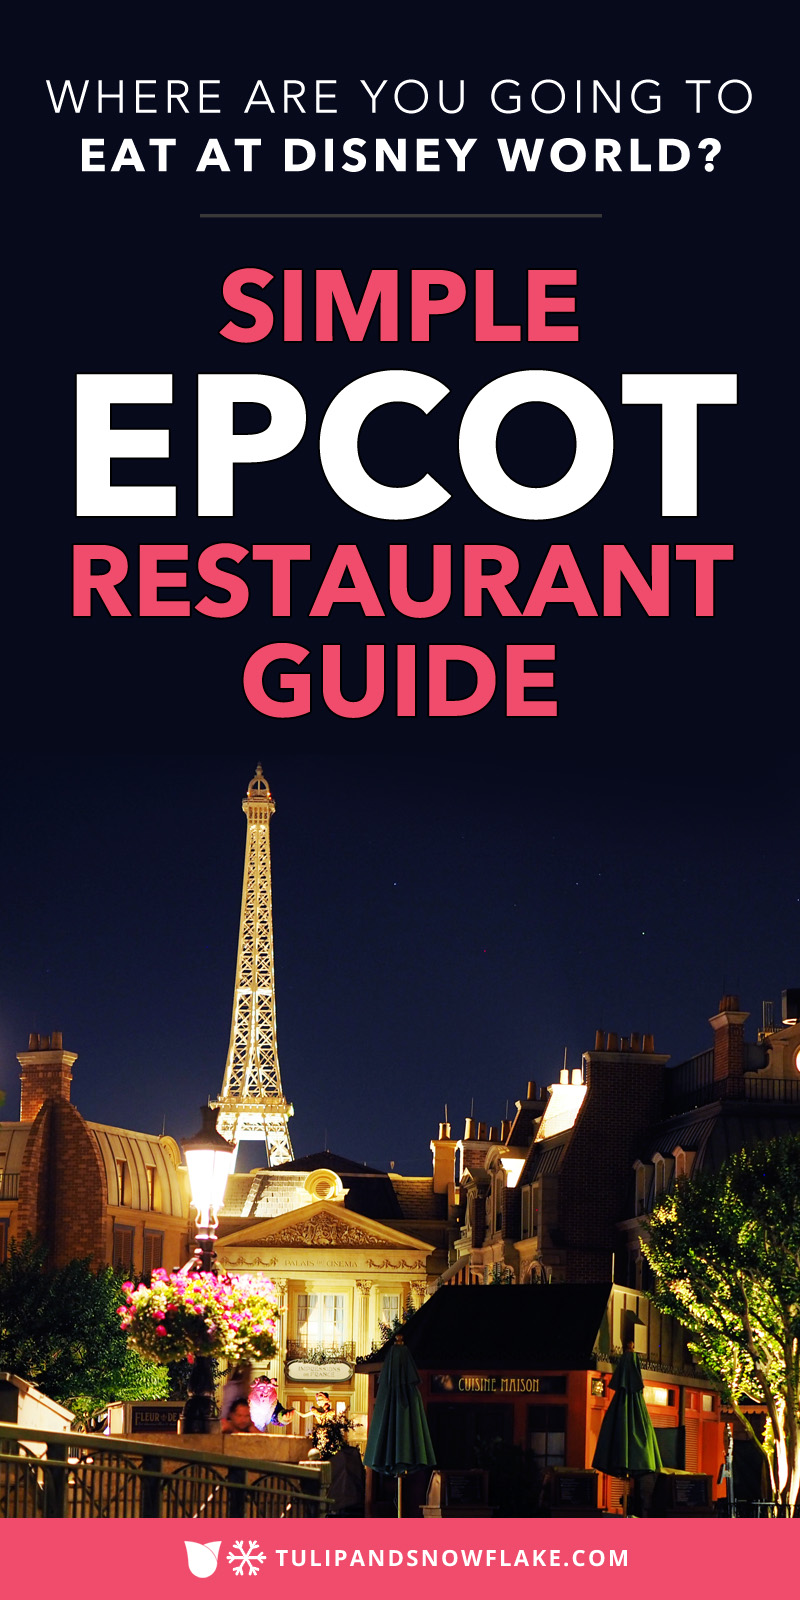 Simple Epcot Restaurant Guide